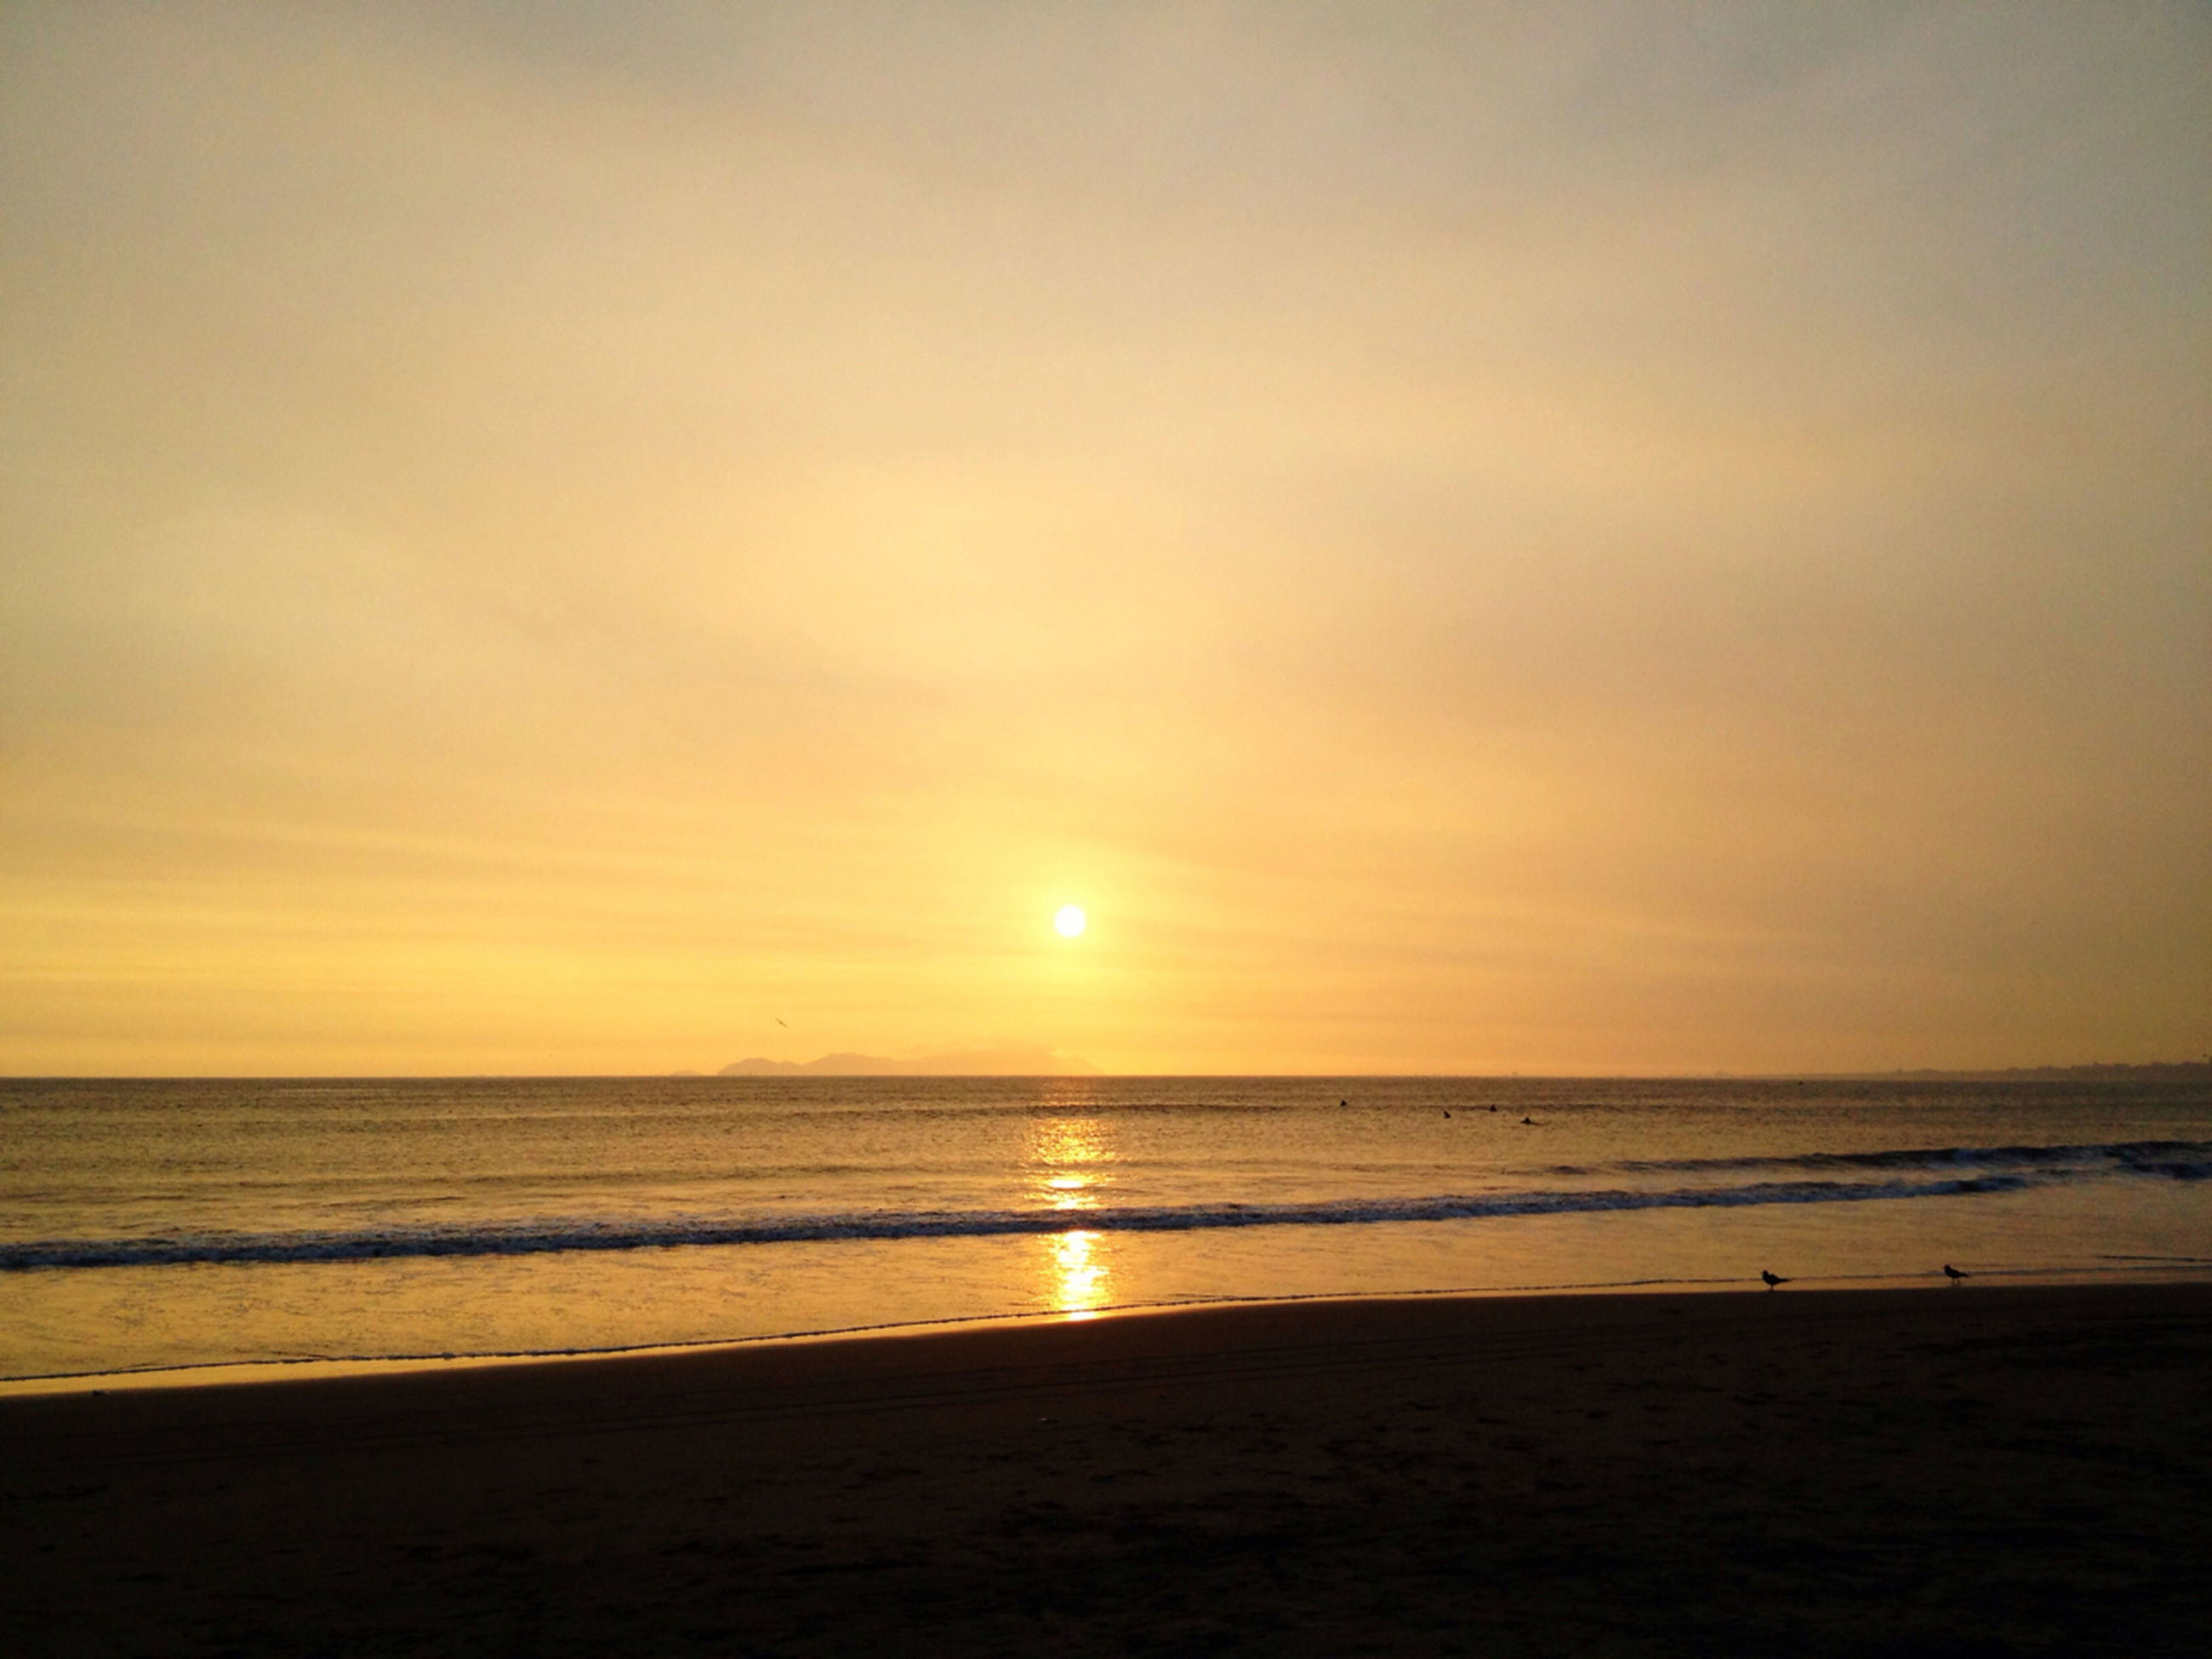 sea, horizon over water, beach, sunset, water, scenics, shore, tranquil scene, beauty in nature, tranquility, sun, sky, idyllic, orange color, nature, sand, wave, coastline, sunlight, reflection